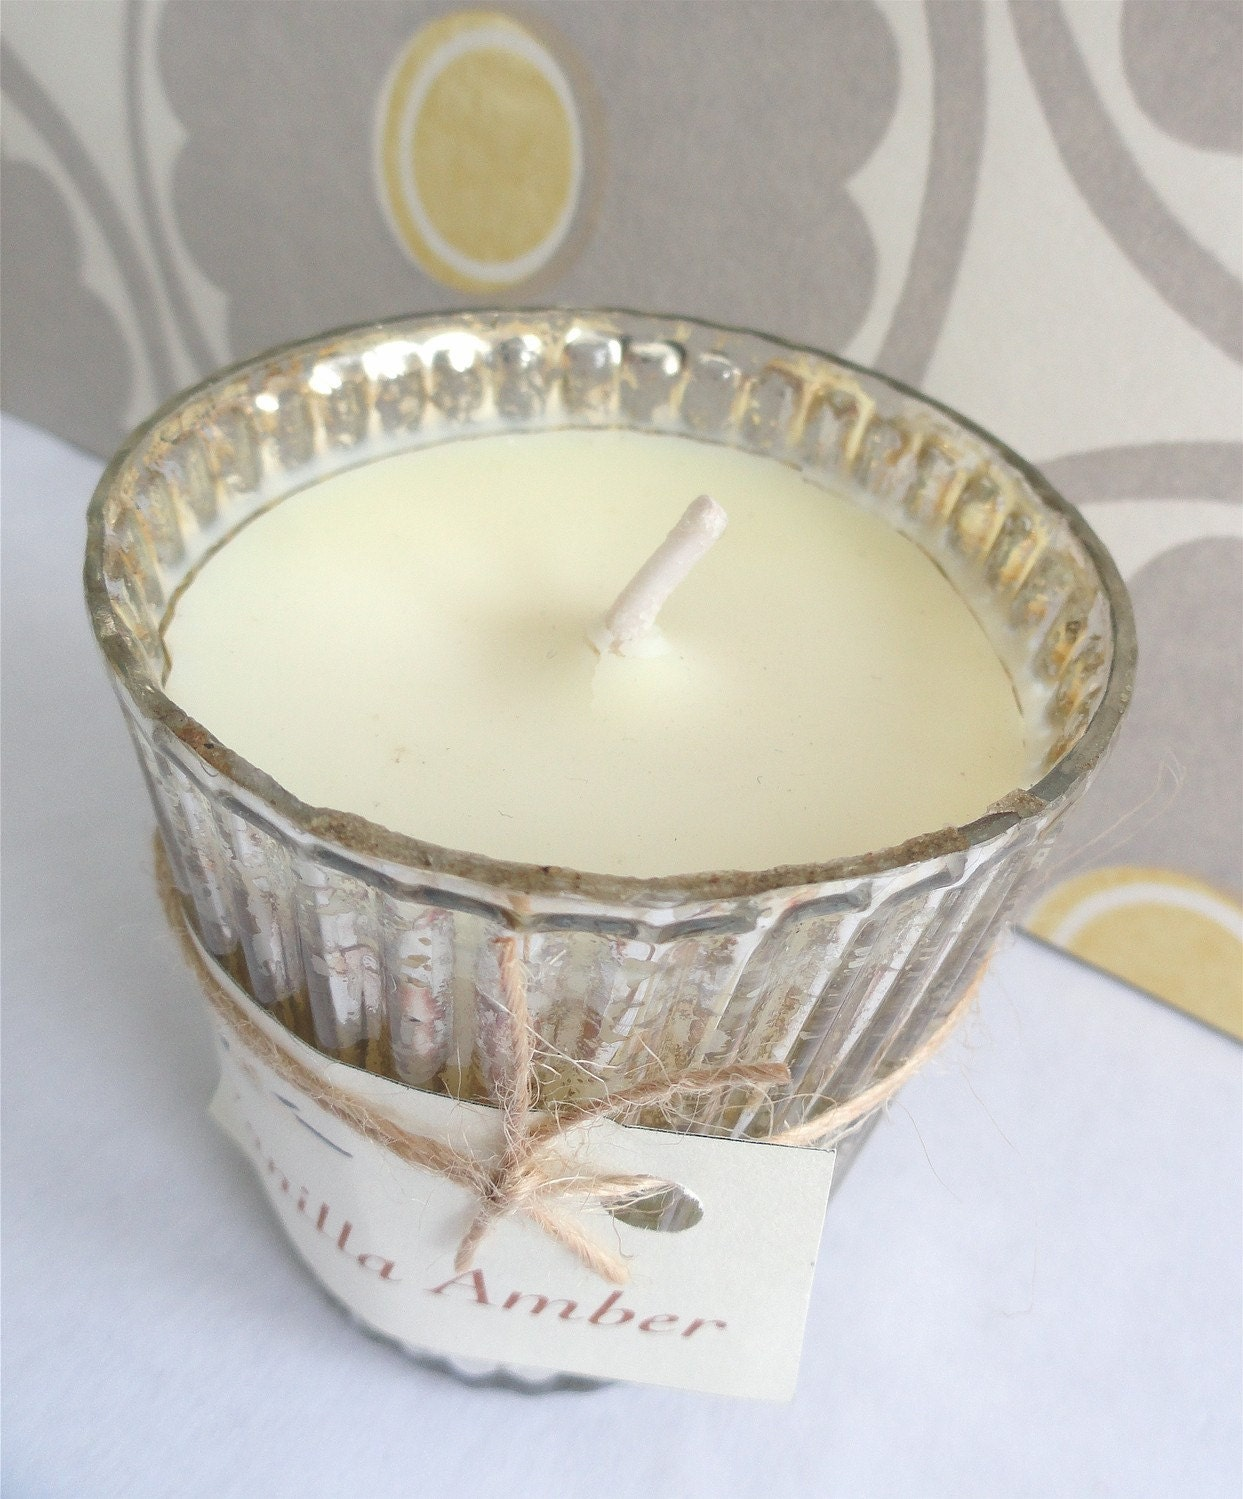 VANILLA AMBER Handcrafted Soy Candle Recycled (6 oz.)